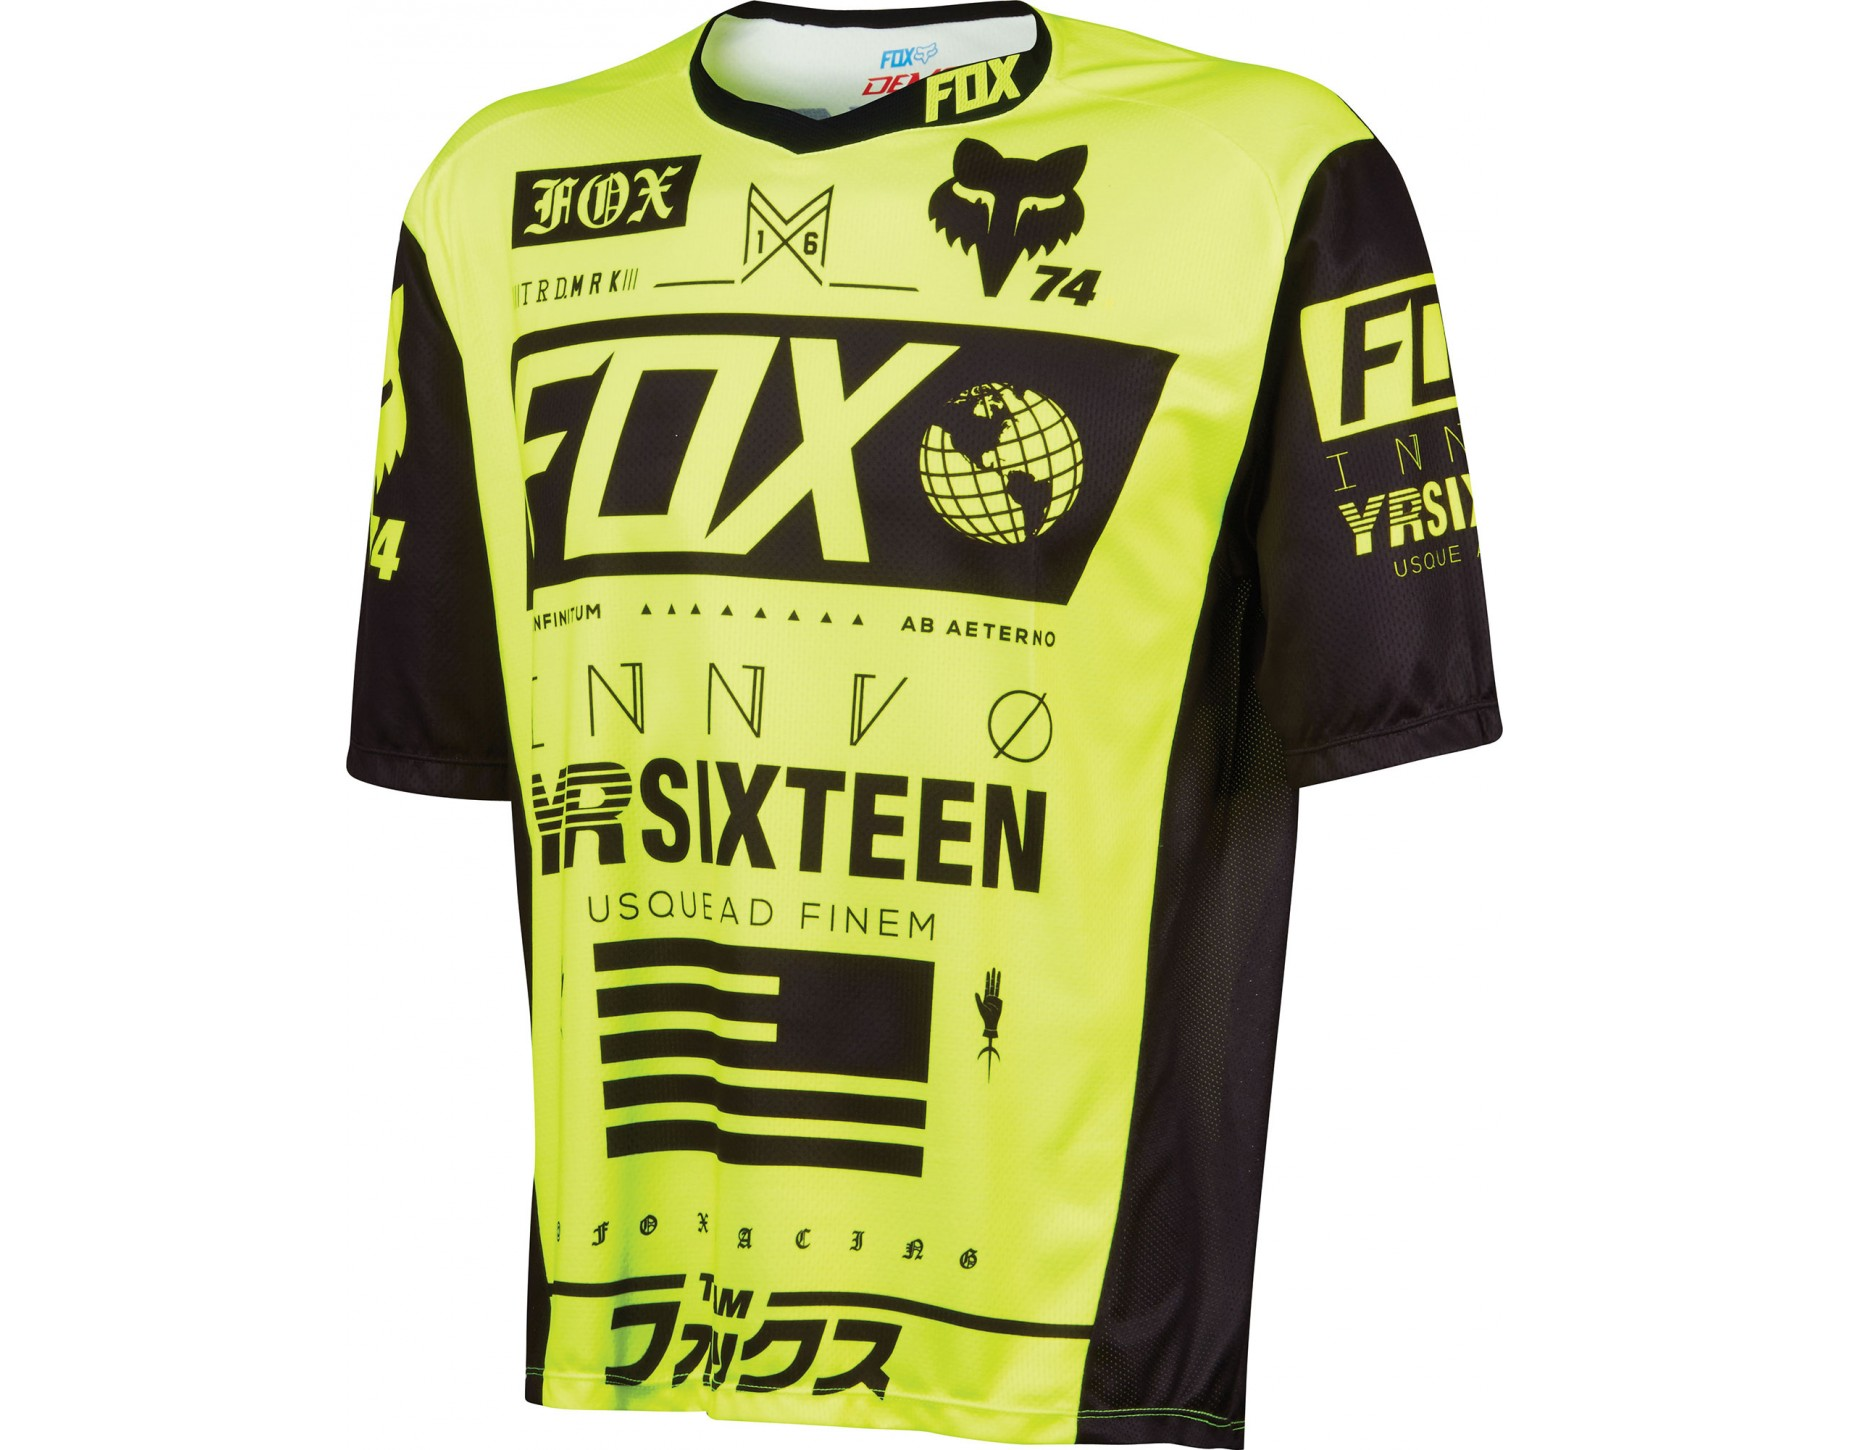 FOX DEMO UNION Jersey